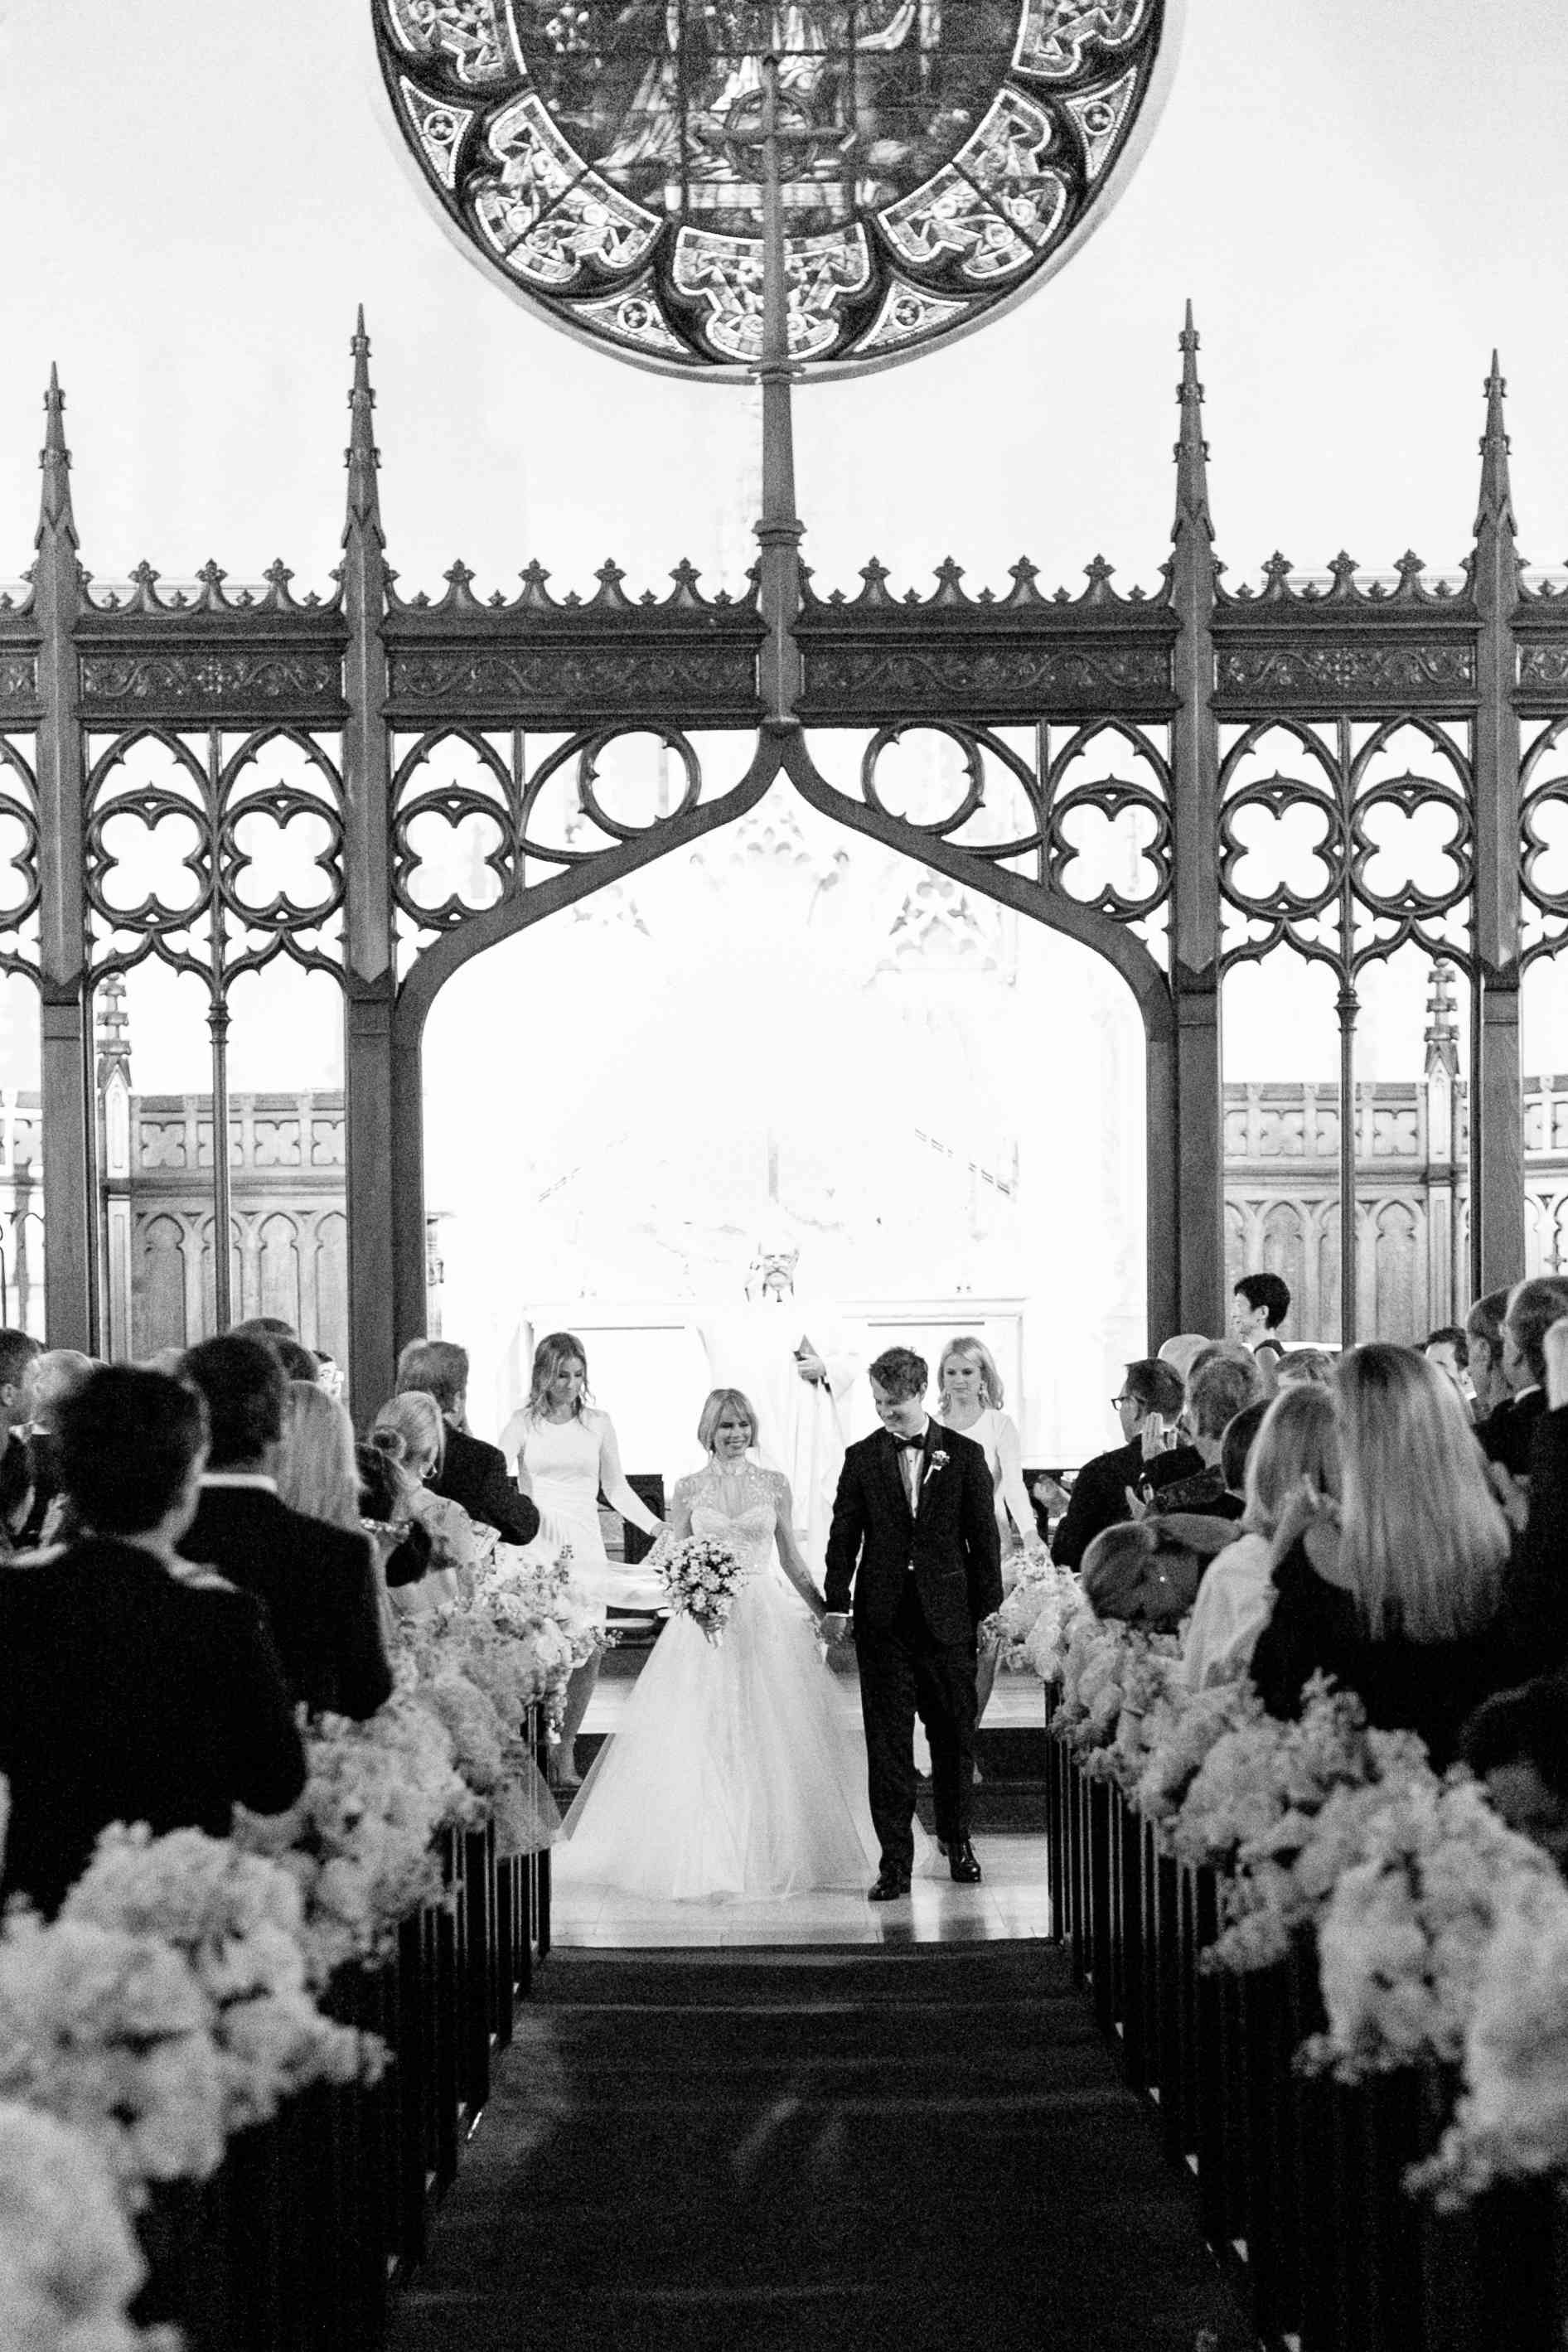 <p>Bride and Groom at Ceremony</p><br><br>